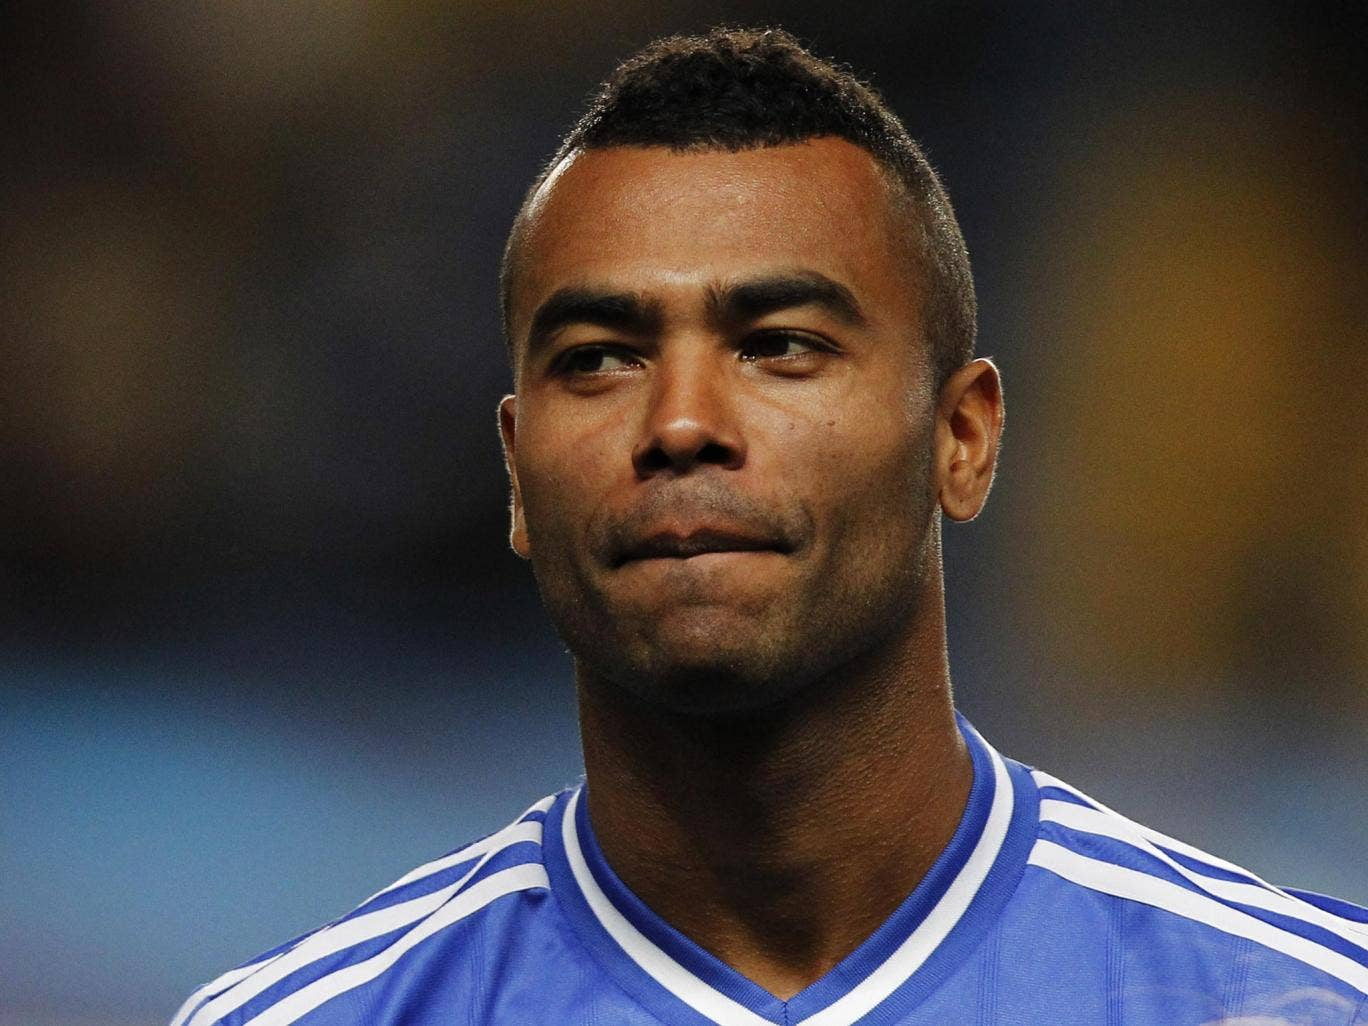 Ashley Cole was in the same youth team as Weston at Arsenal and is one of the few in the side still playing